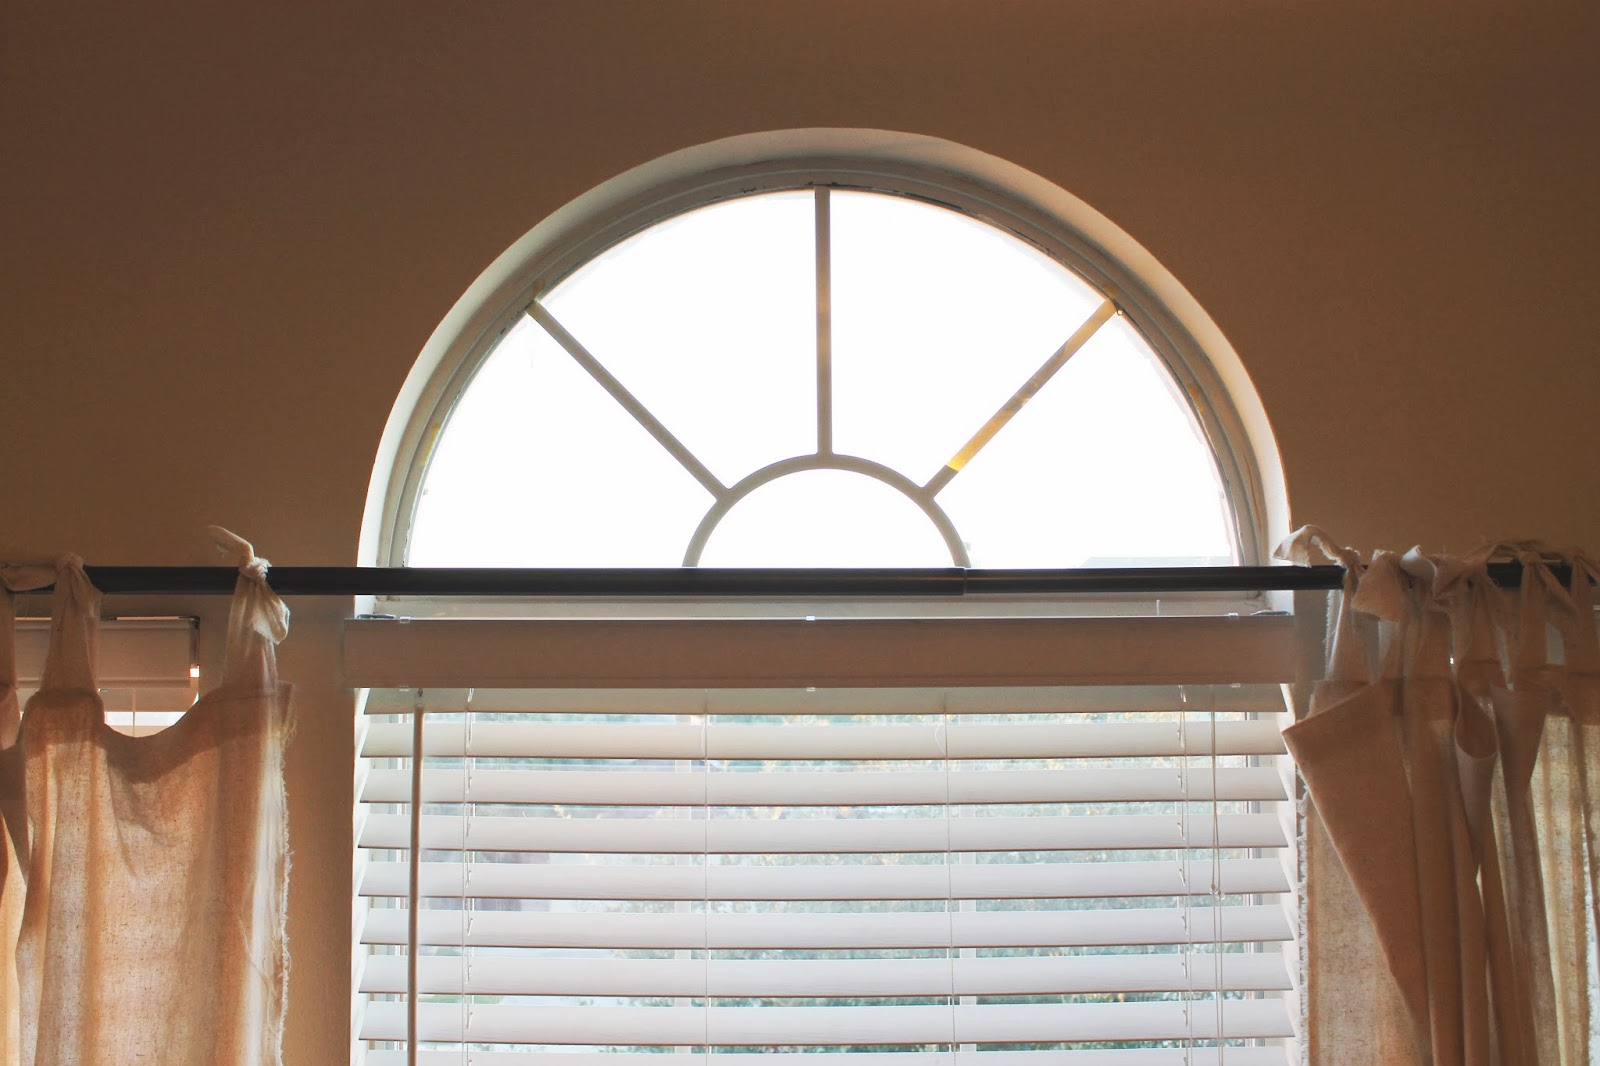 Covering Arched Windows